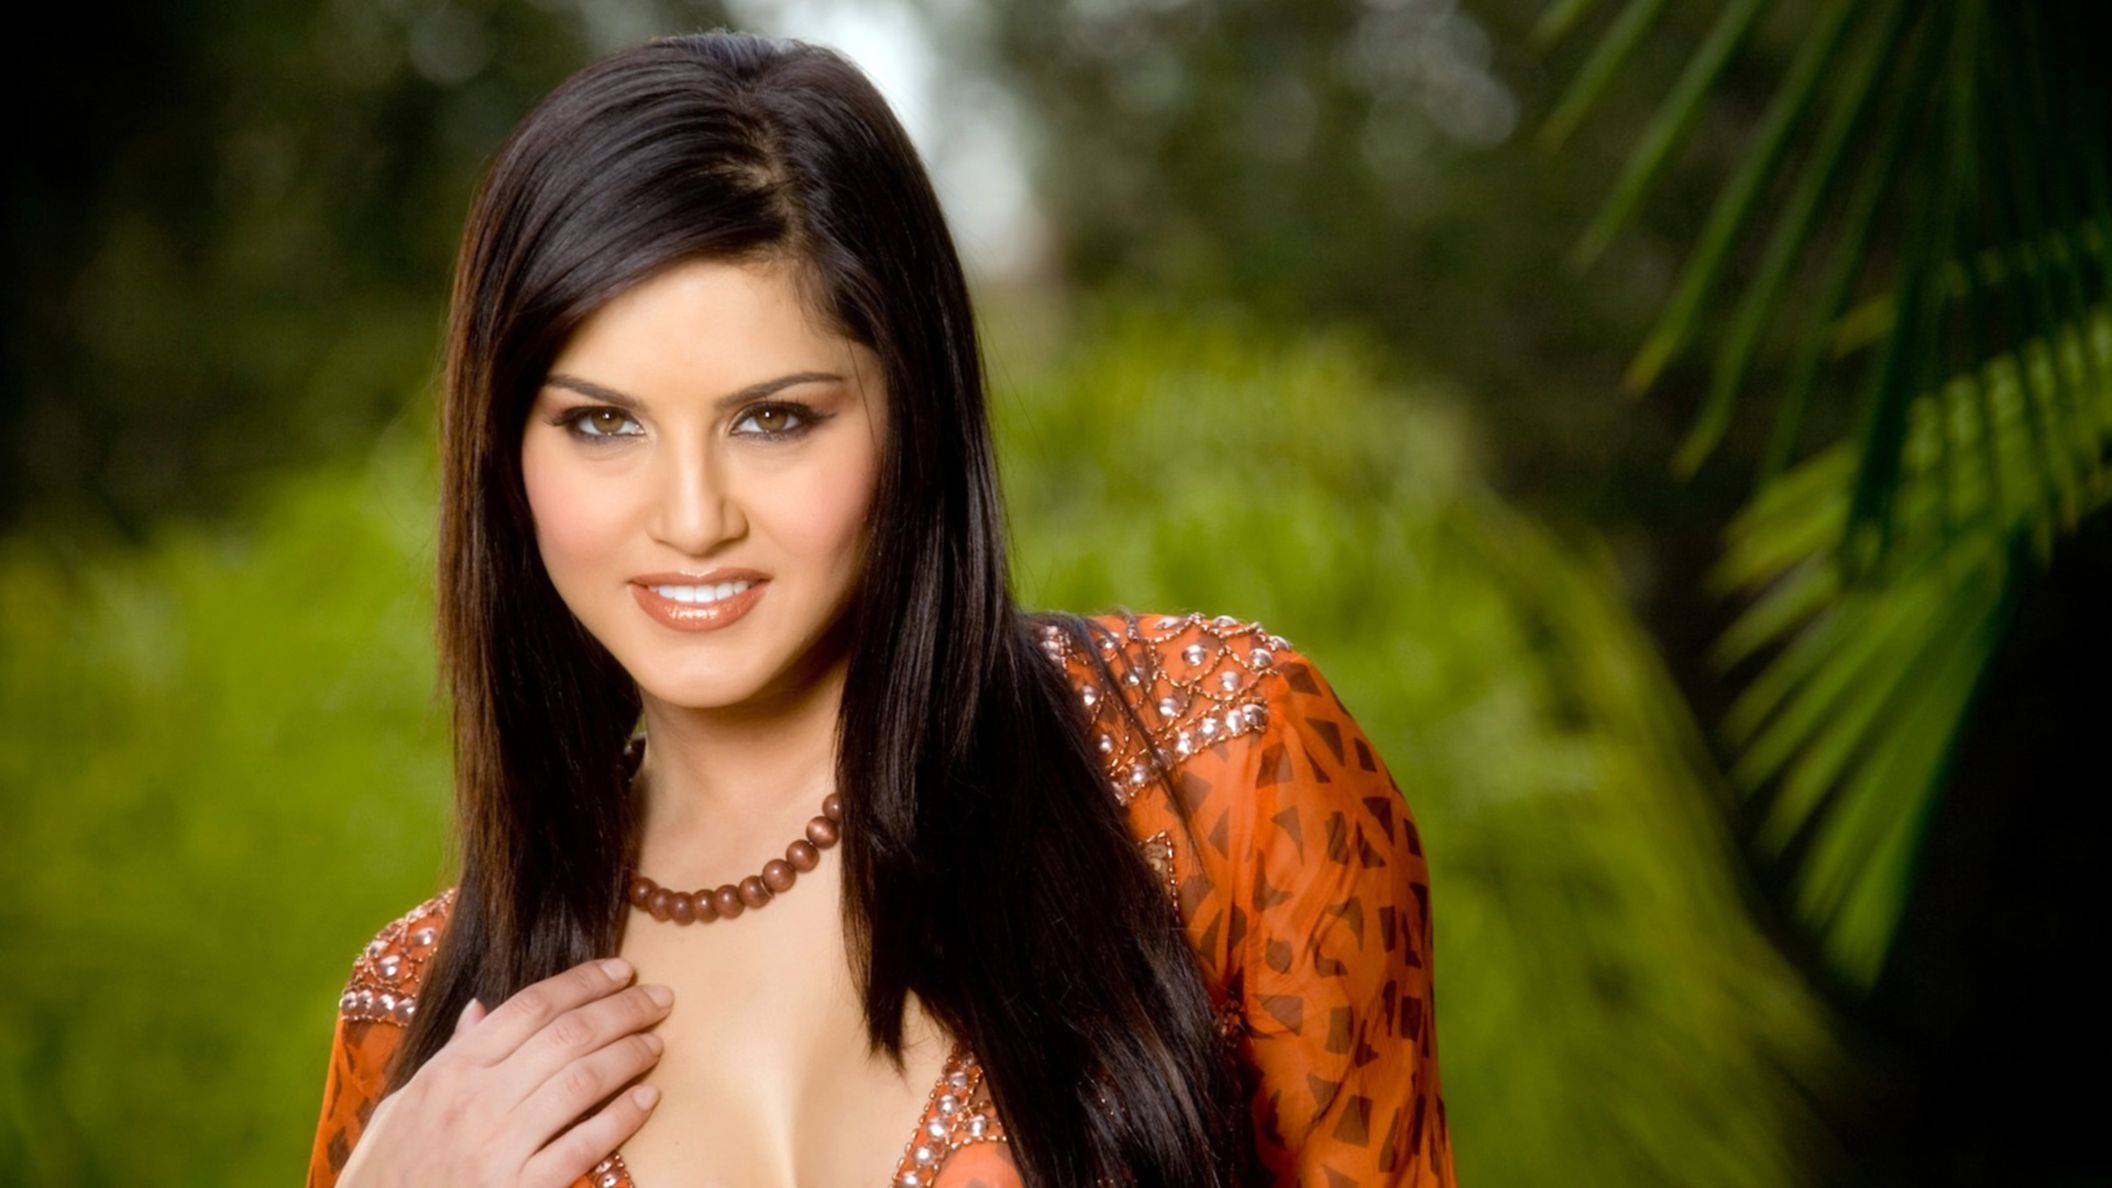 Download free HD Sunny Leone New HD Wallpaper, image